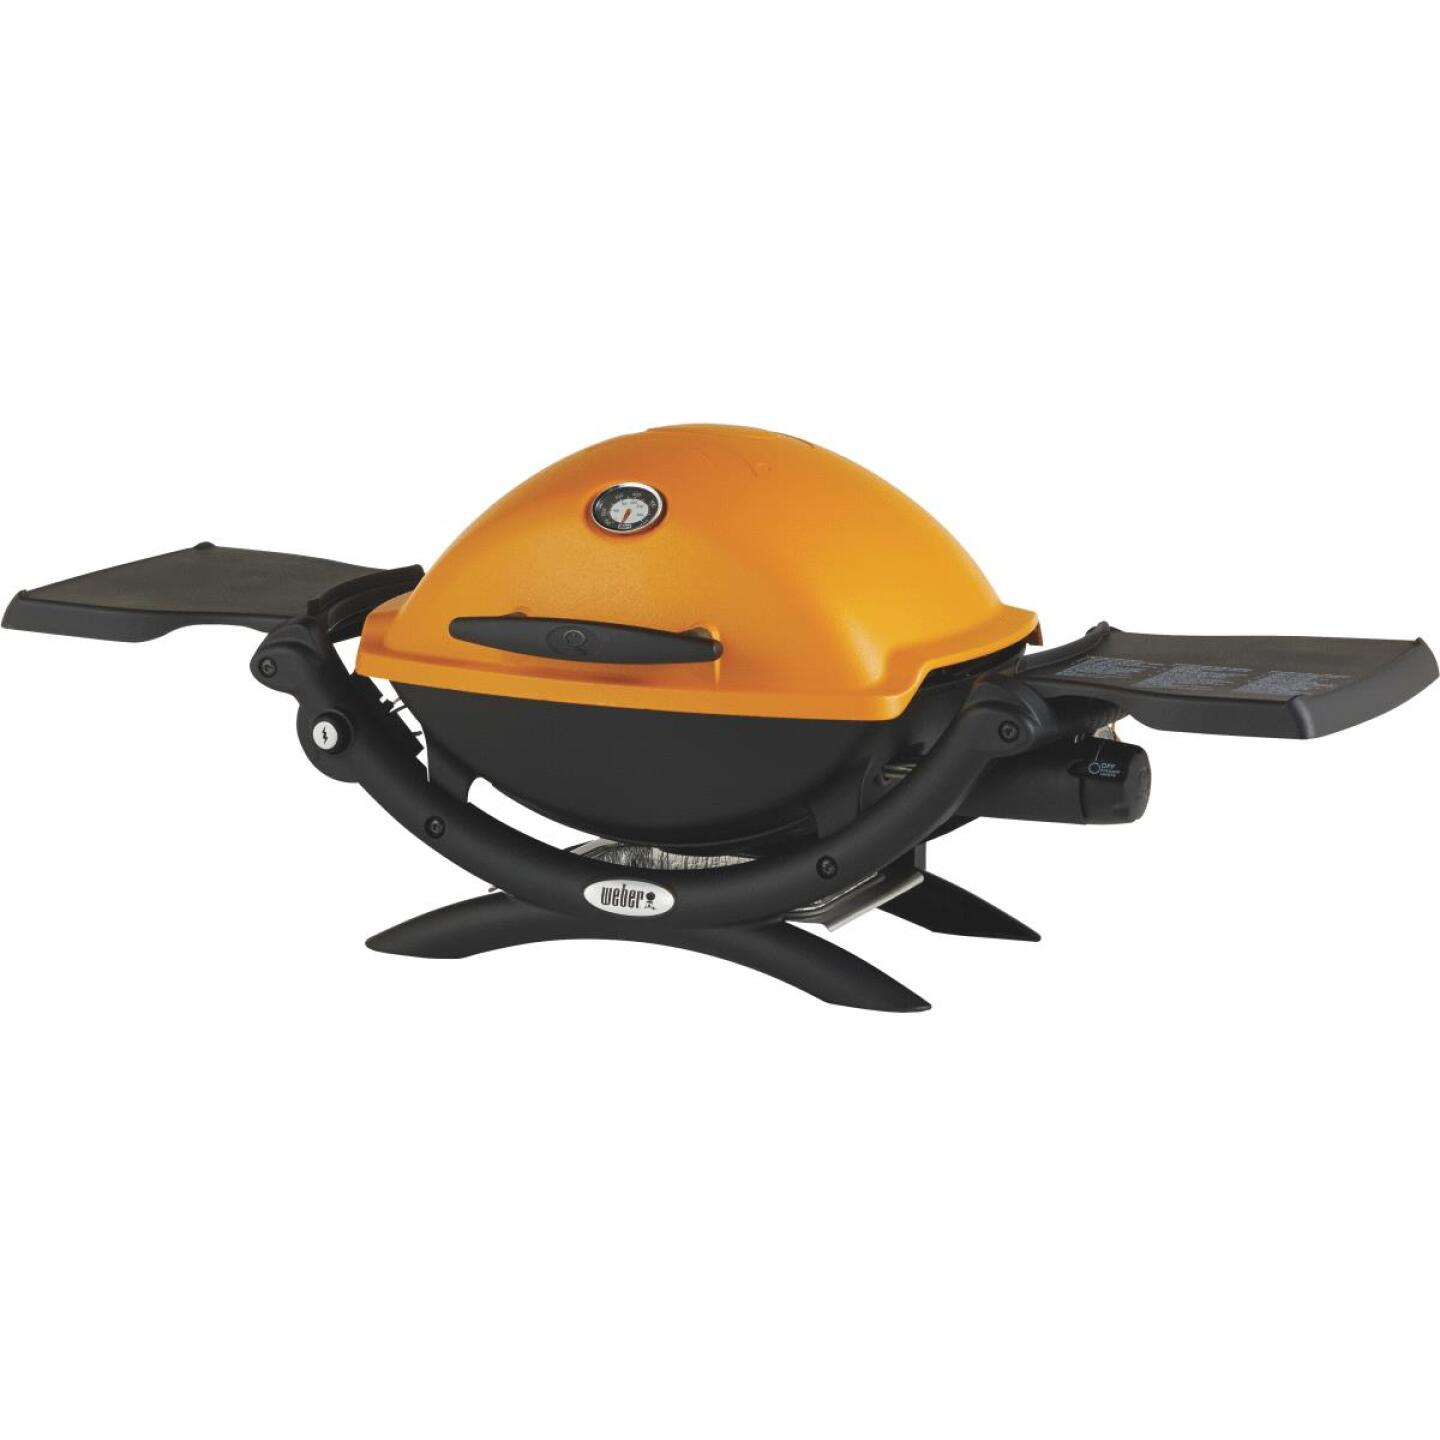 Weber Q 1200 1-Burner Orange 8,500-BTU LP Gas Grill Image 8